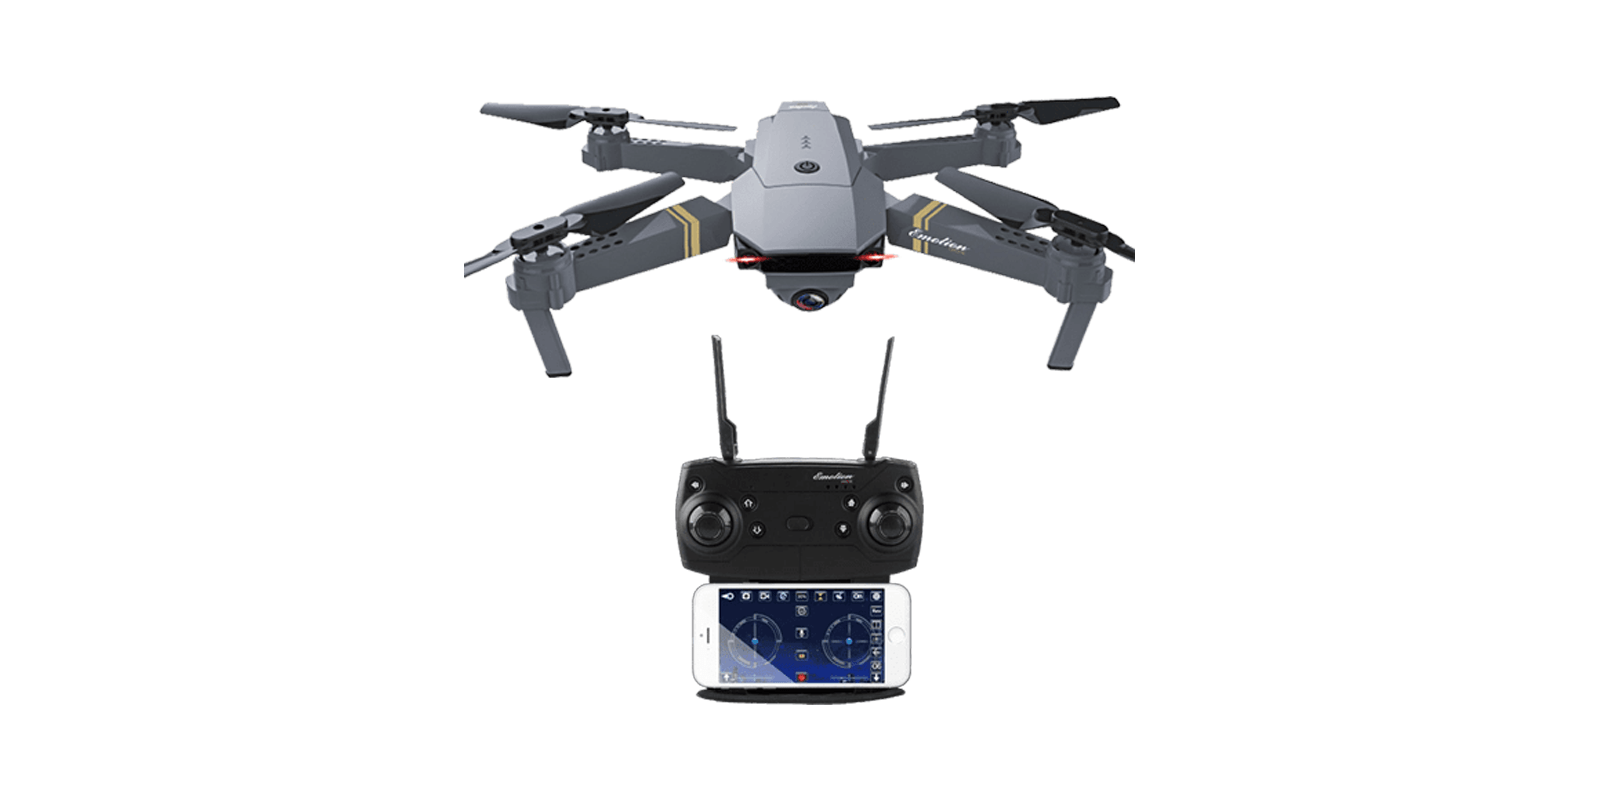 Drone X Pro features